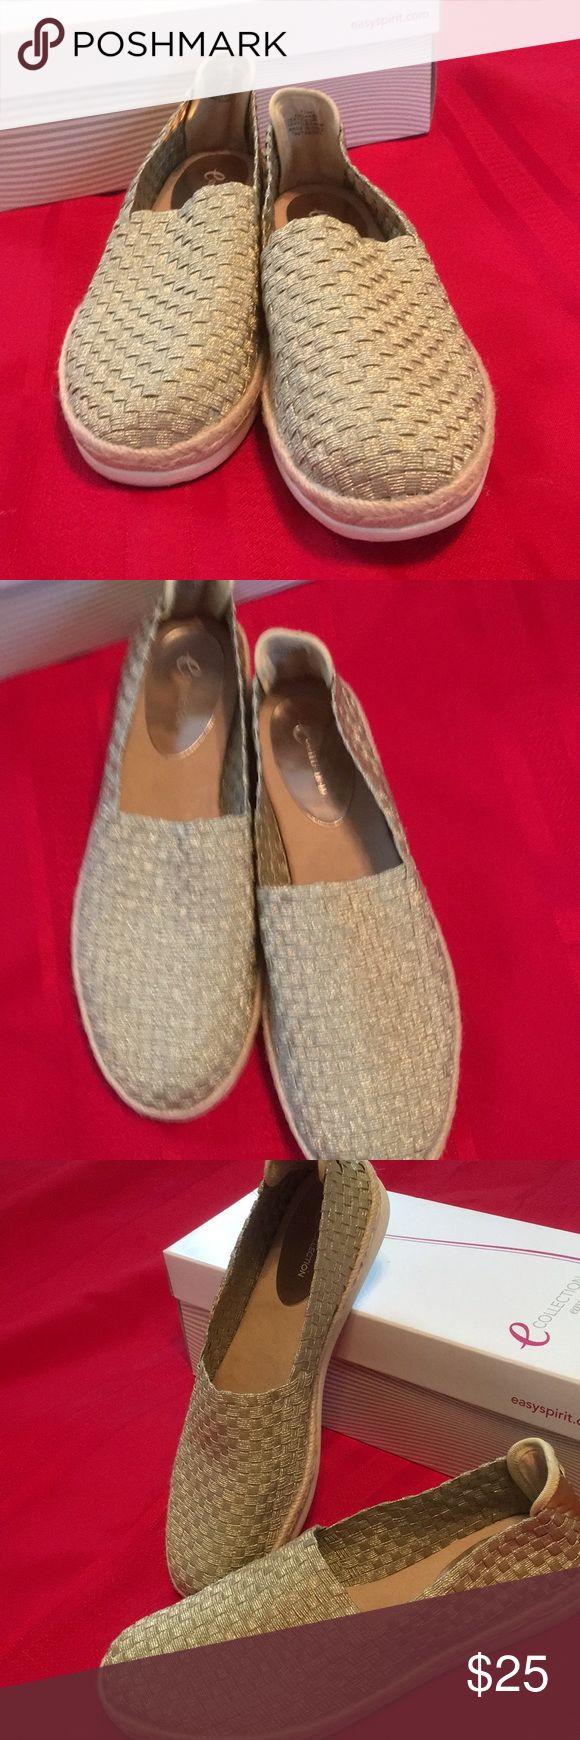 Easy Spirit  shoes Woven gold metallic slip on shoes brand new never worn Easy Spirit Shoes